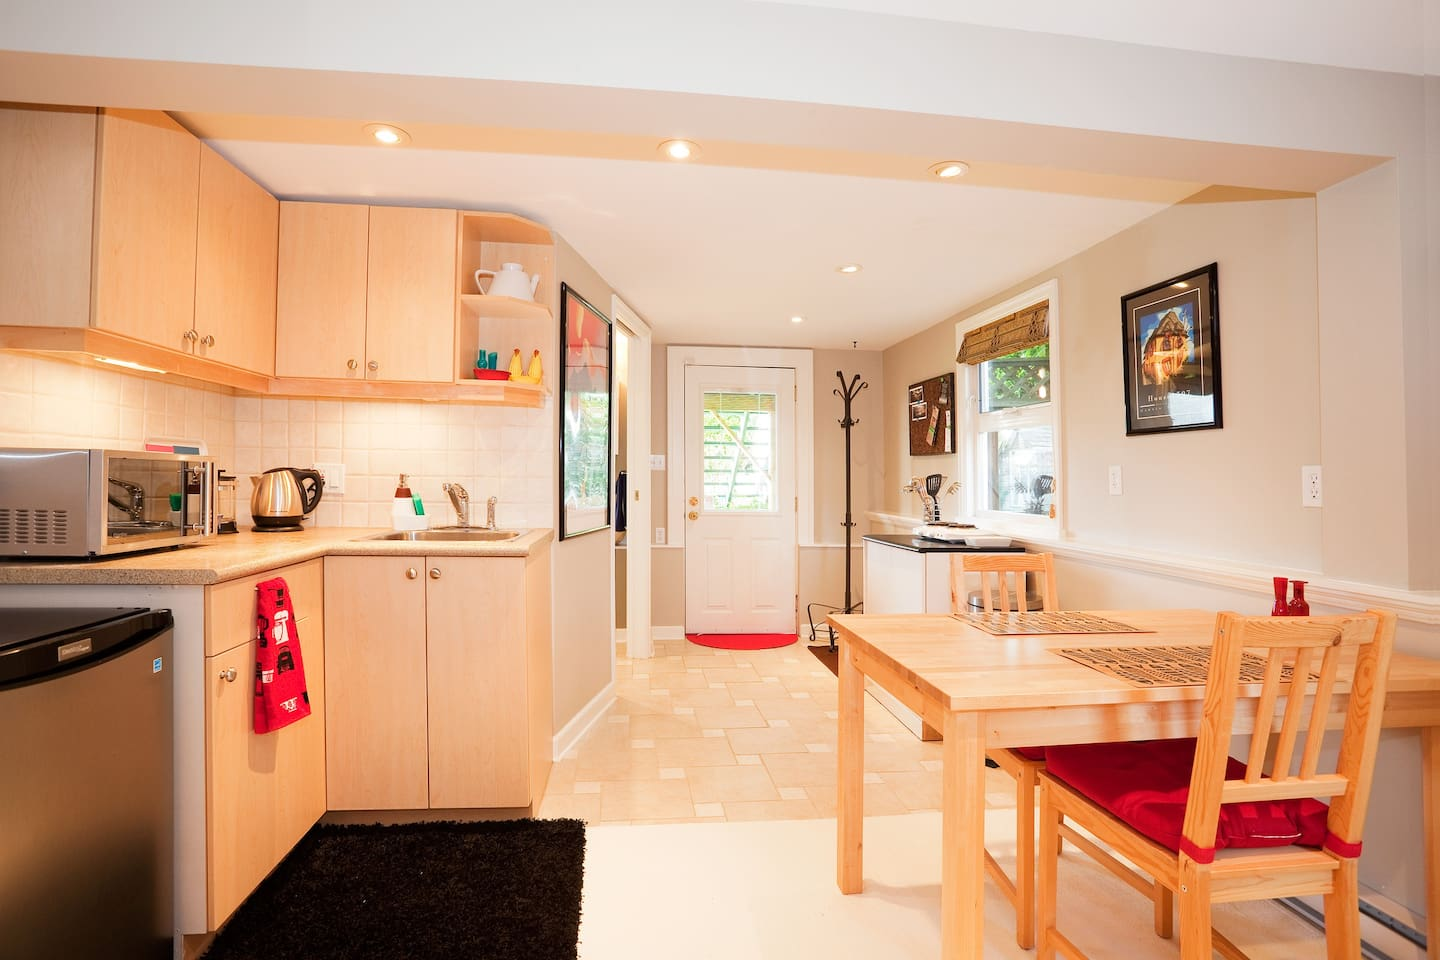 Kitchenette and dining area with private entrance to the sunny patio and back garden